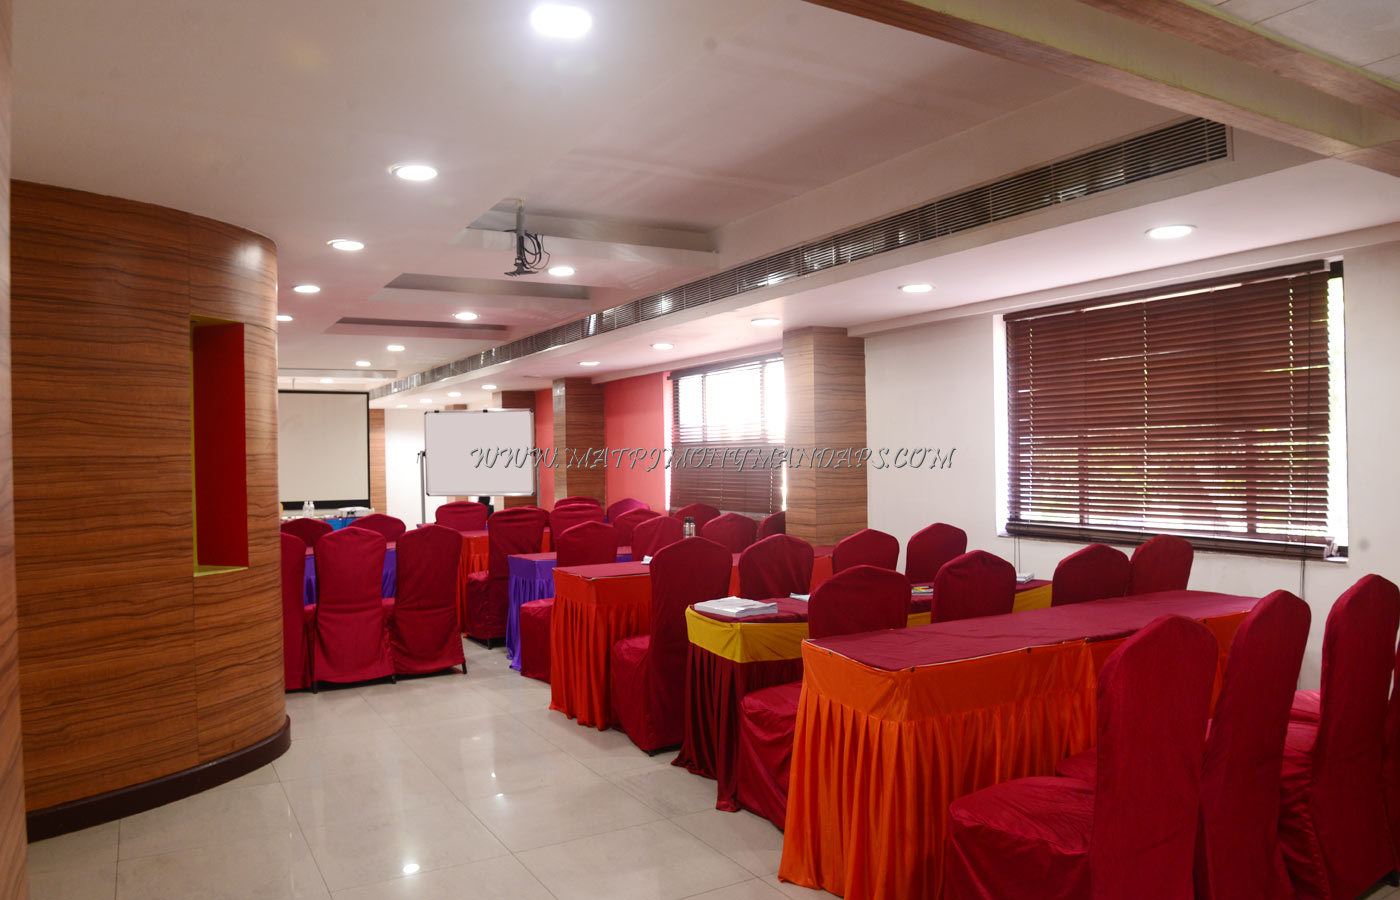 Find the availability of the Hotel Shelter  Oasis Hall (A/C) in Mylapore, Chennai and avail special offers